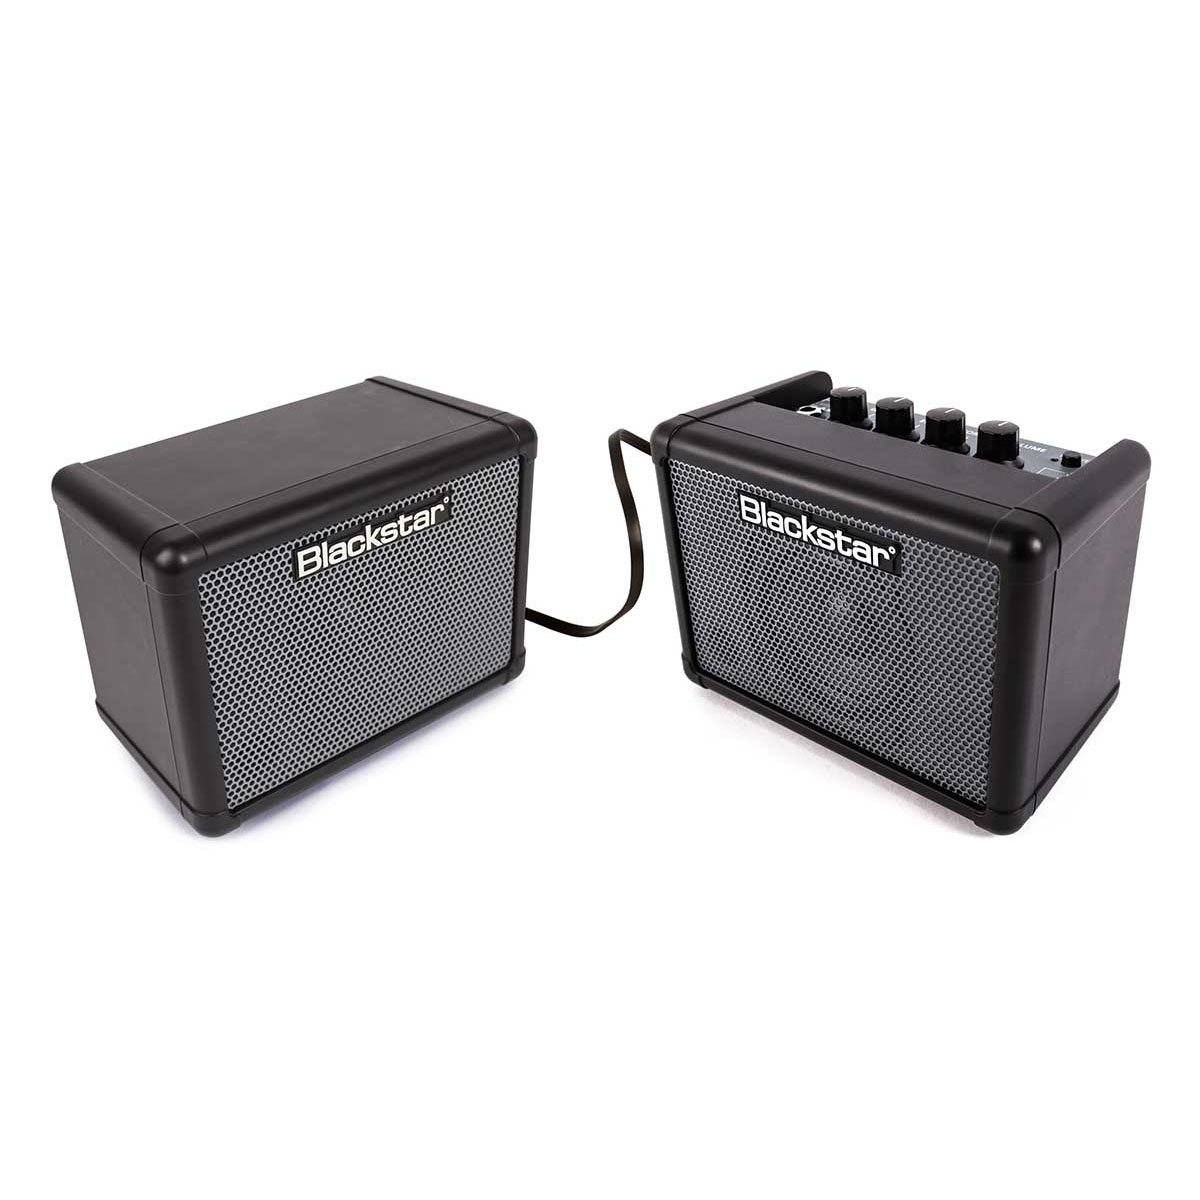 Blackstar Fly 3 Bass Pack - Amplificador bajo